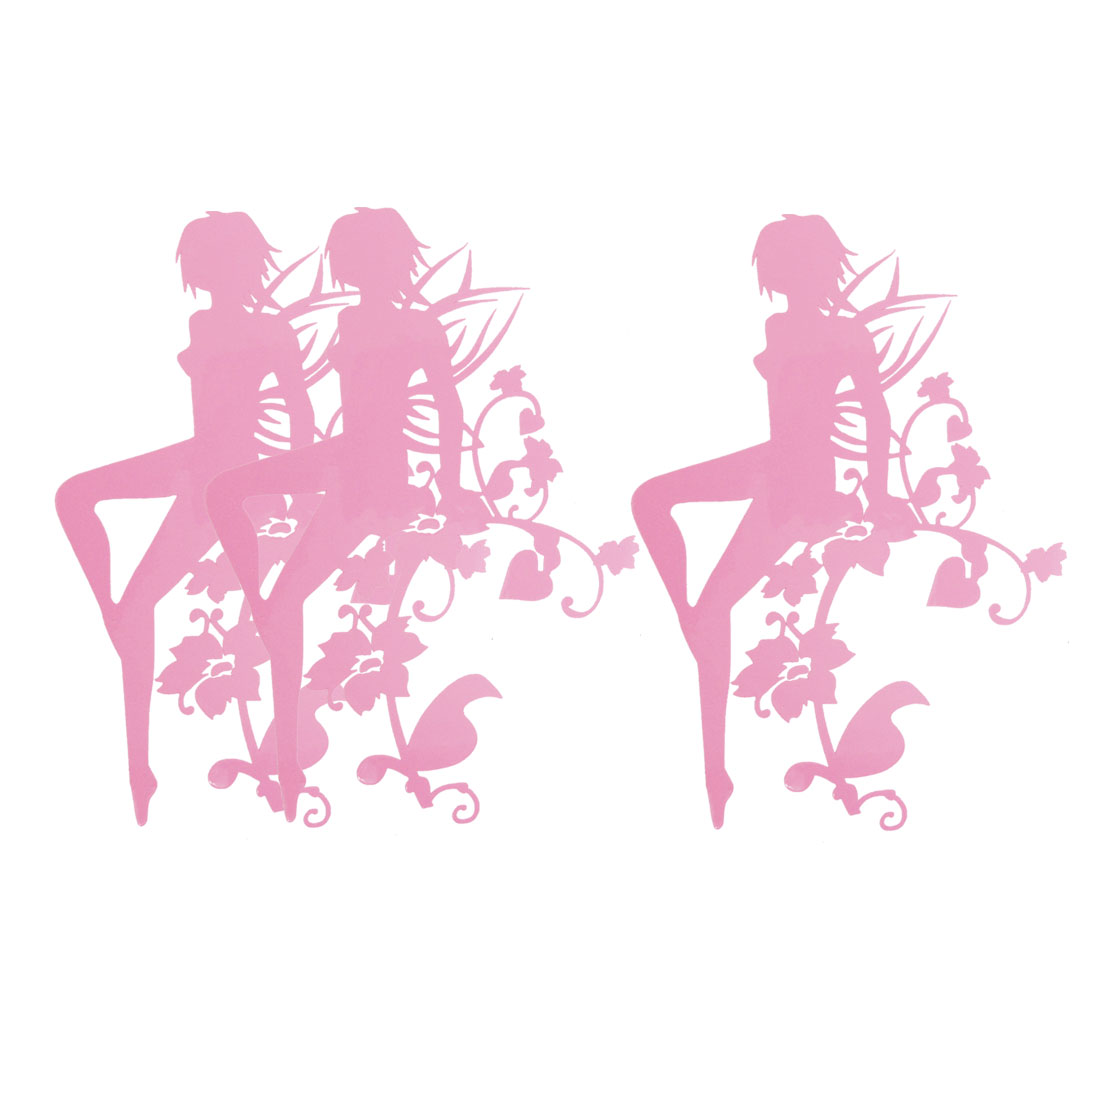 3 Pcs Flower Fairy Print Vinyl Truck Car Graphics Decals Stickers Pink